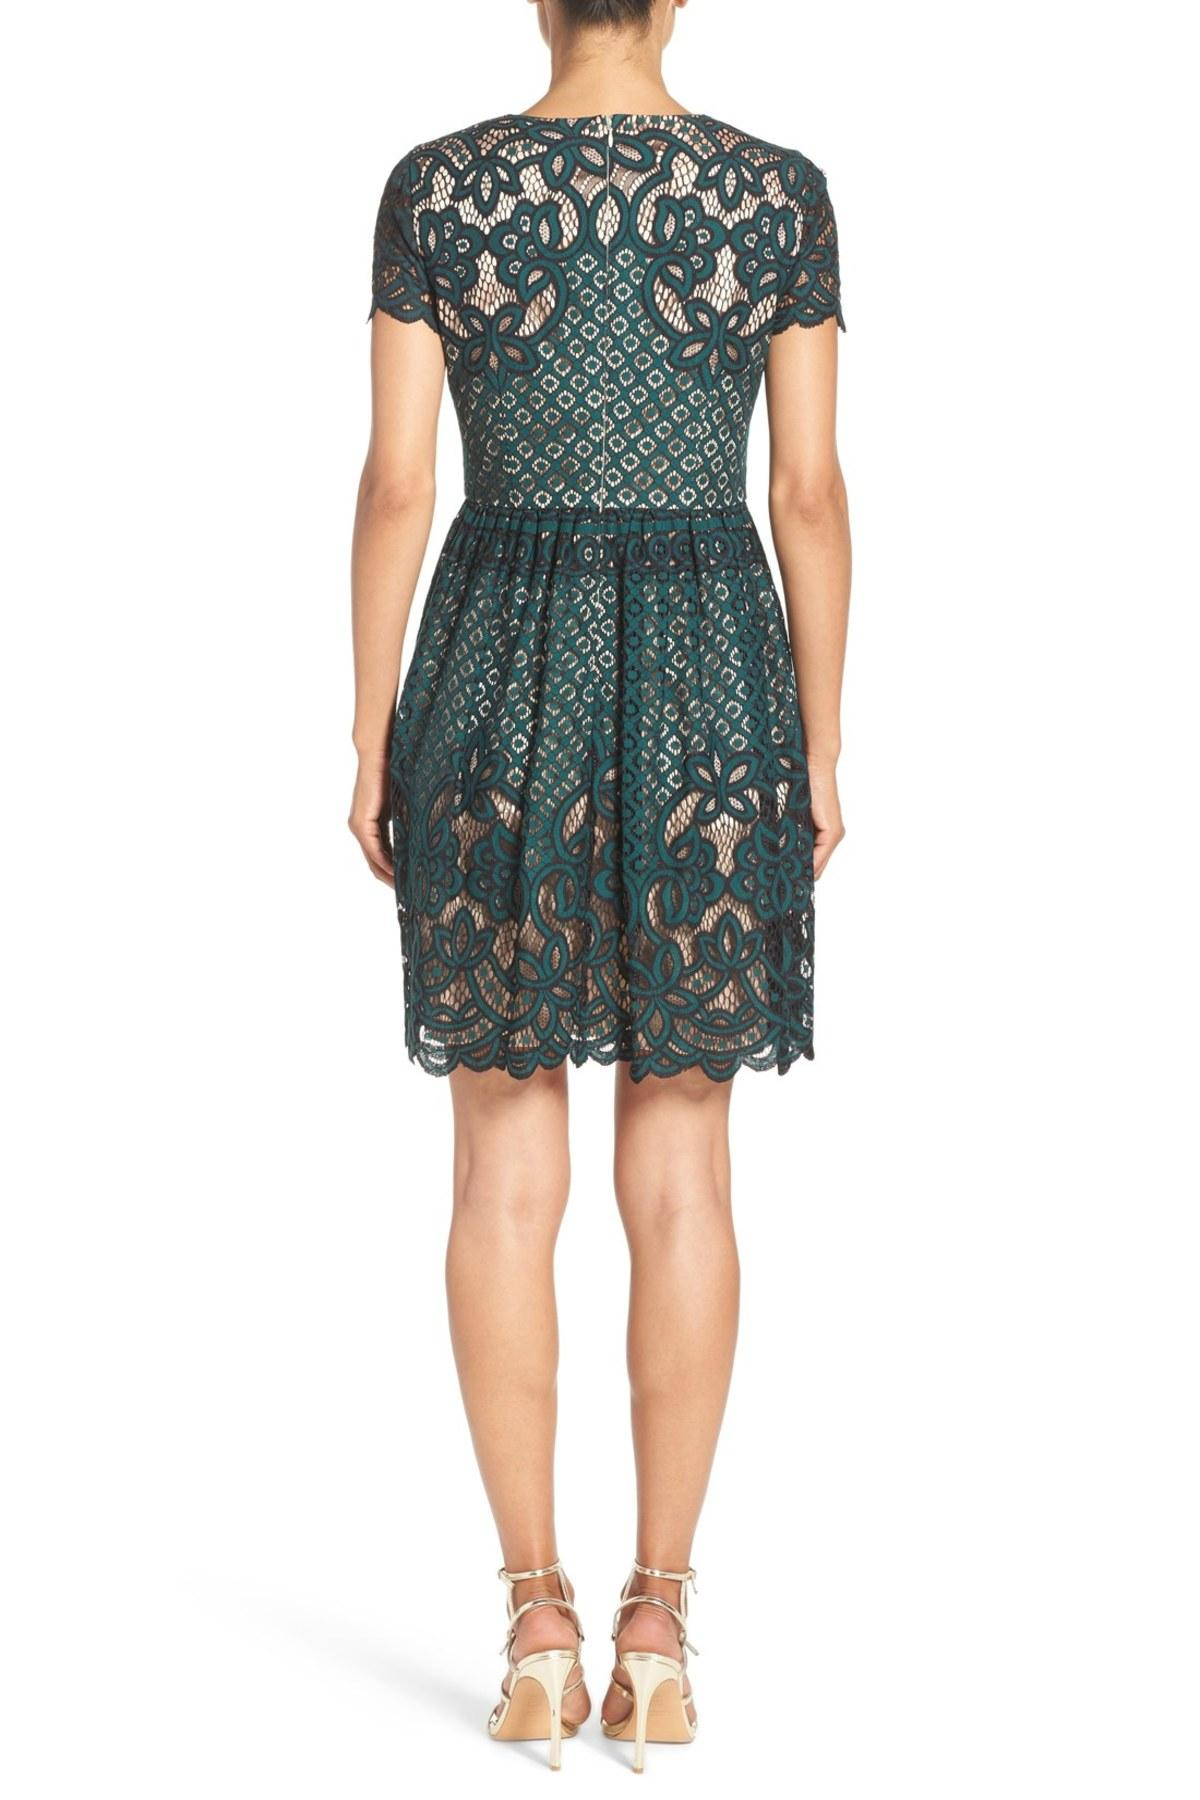 Lyst Eliza J Lace Fit Amp Flare Dress In Green